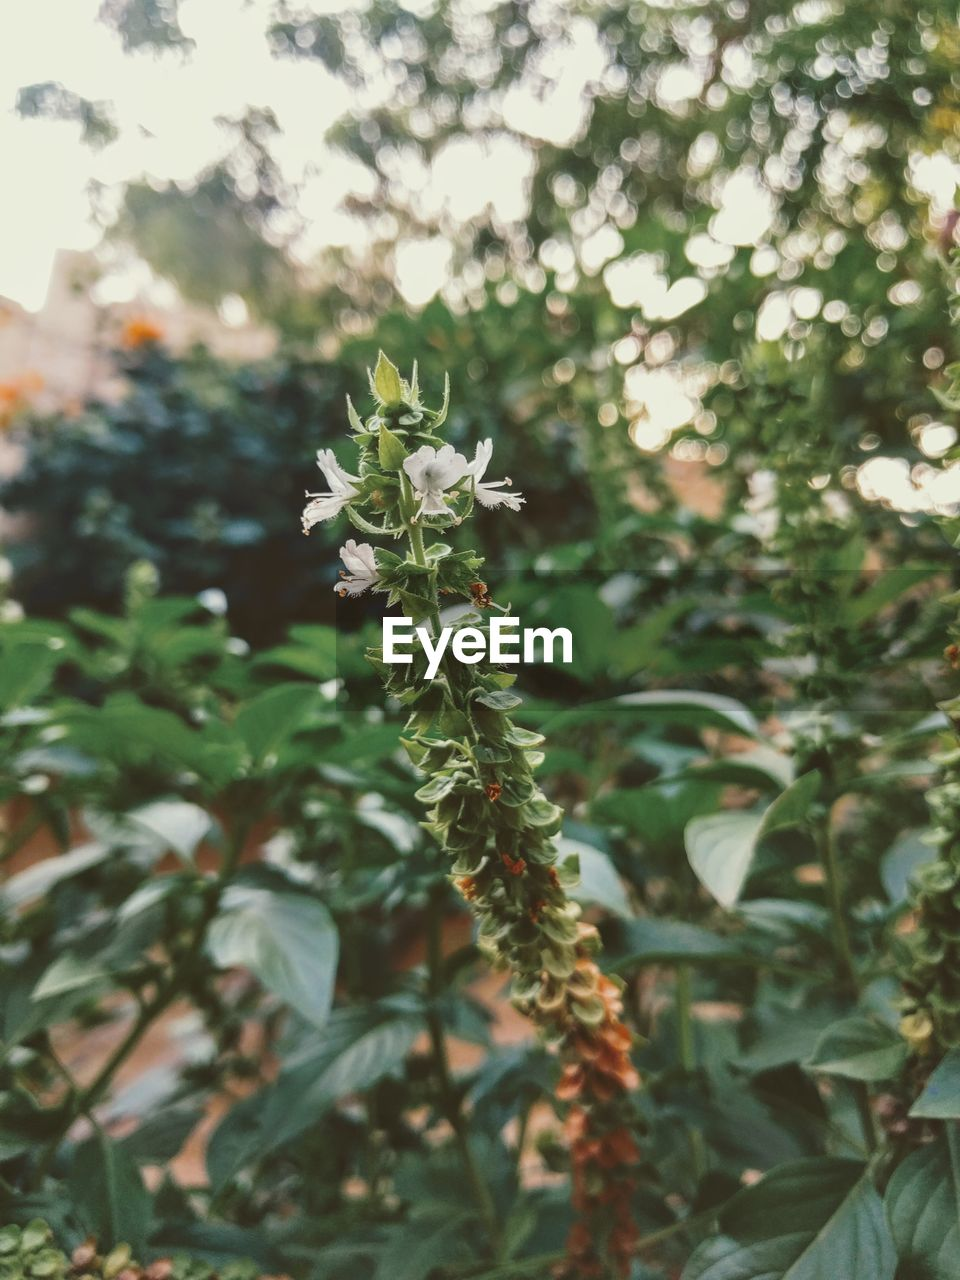 nature, growth, plant, no people, focus on foreground, day, green color, leaf, outdoors, beauty in nature, close-up, fragility, freshness, flower